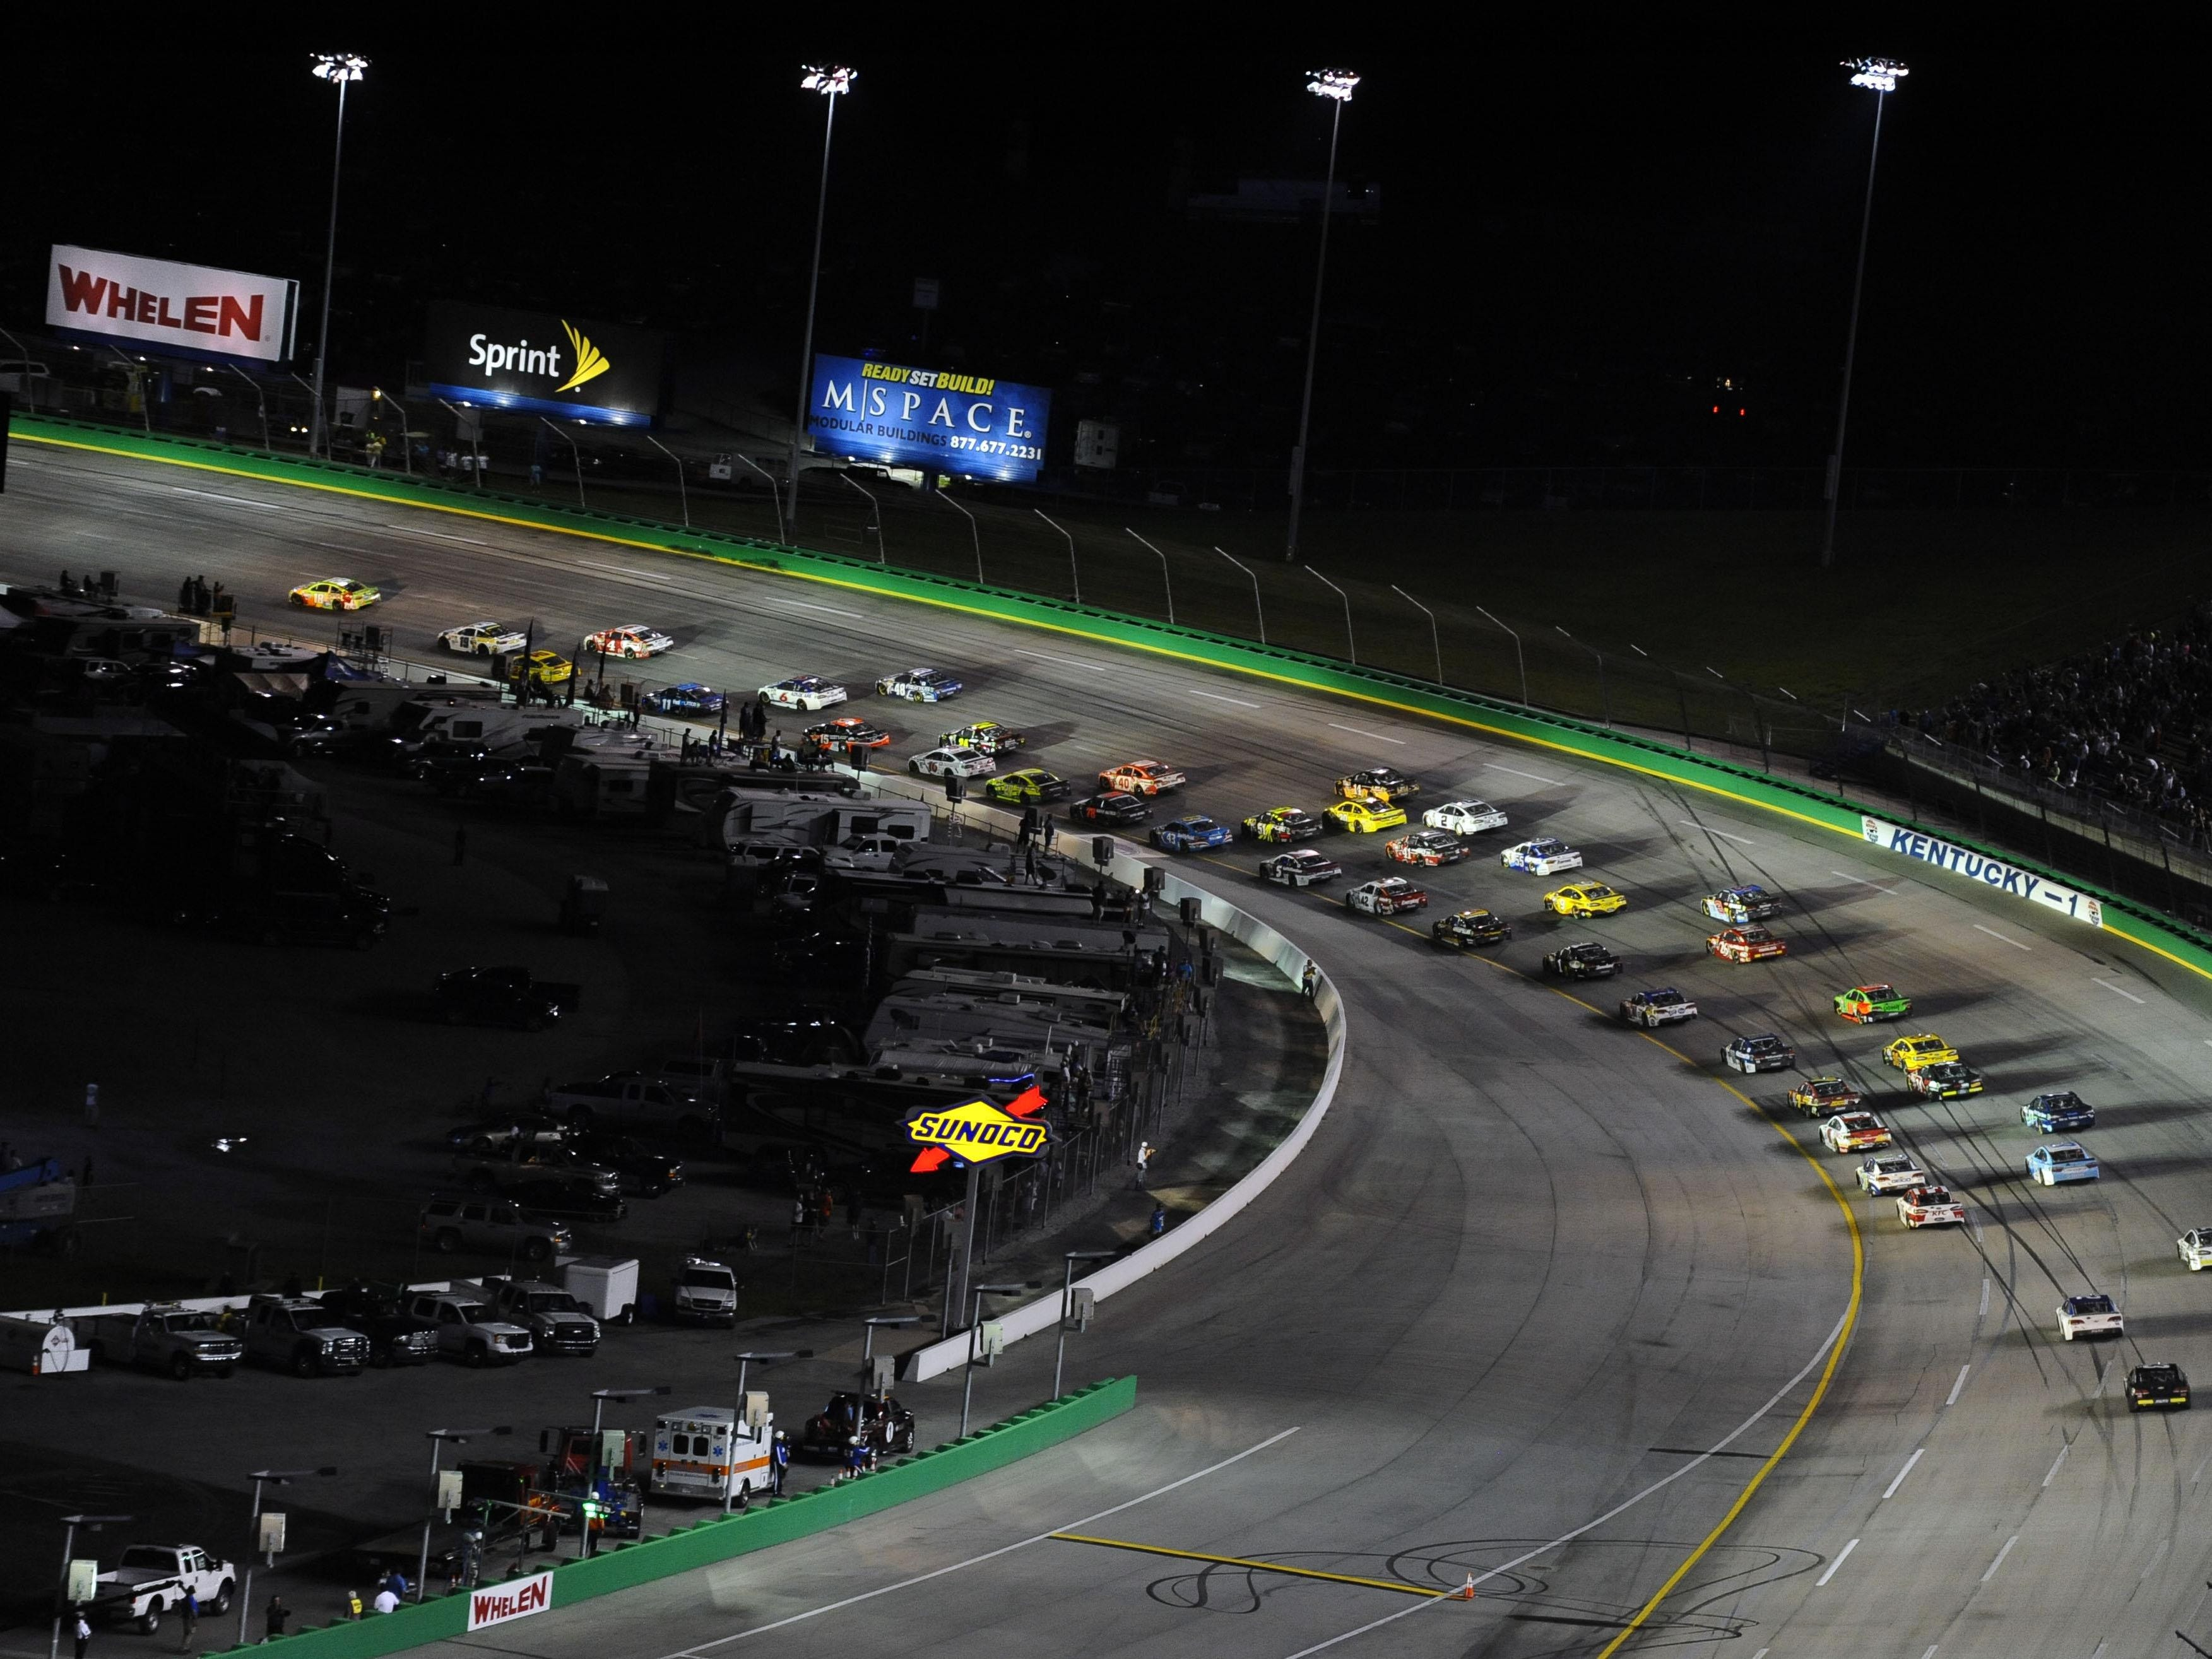 General view of the Kentucky Speedway as drivers take turn one during the Quaker State 400.